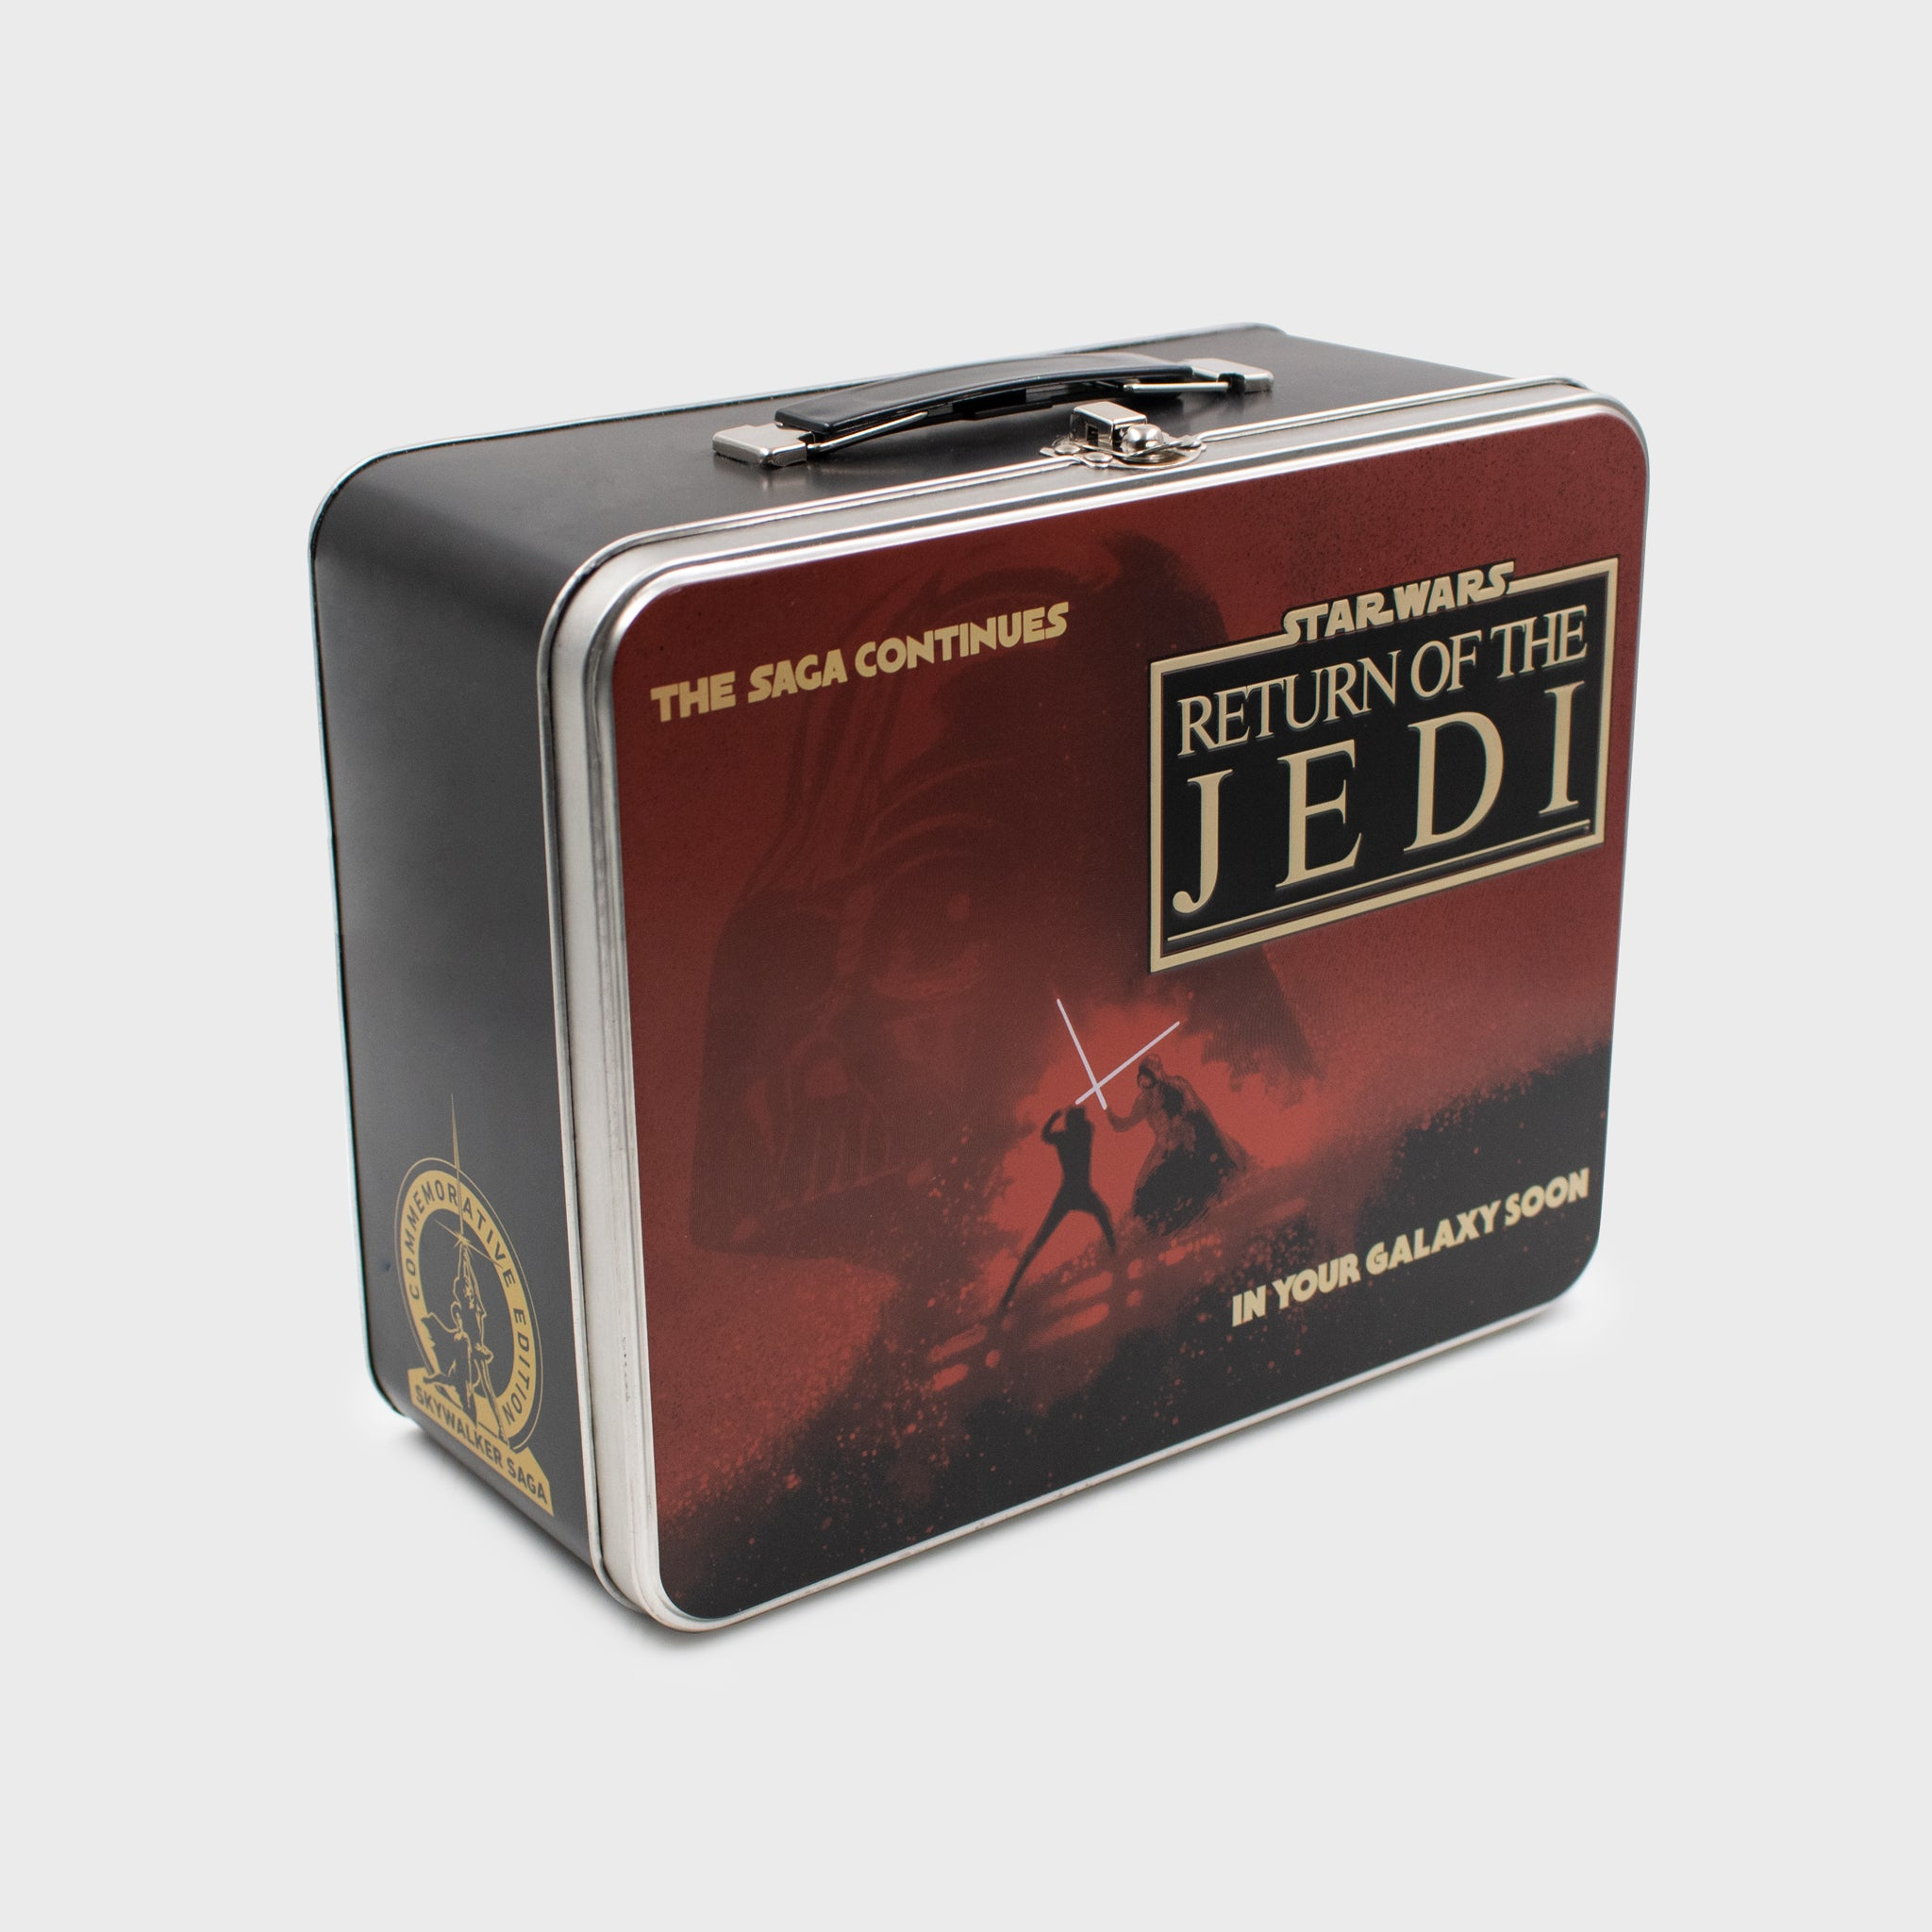 Star Wars: Episode VI – Return of the Jedi Collector's Box